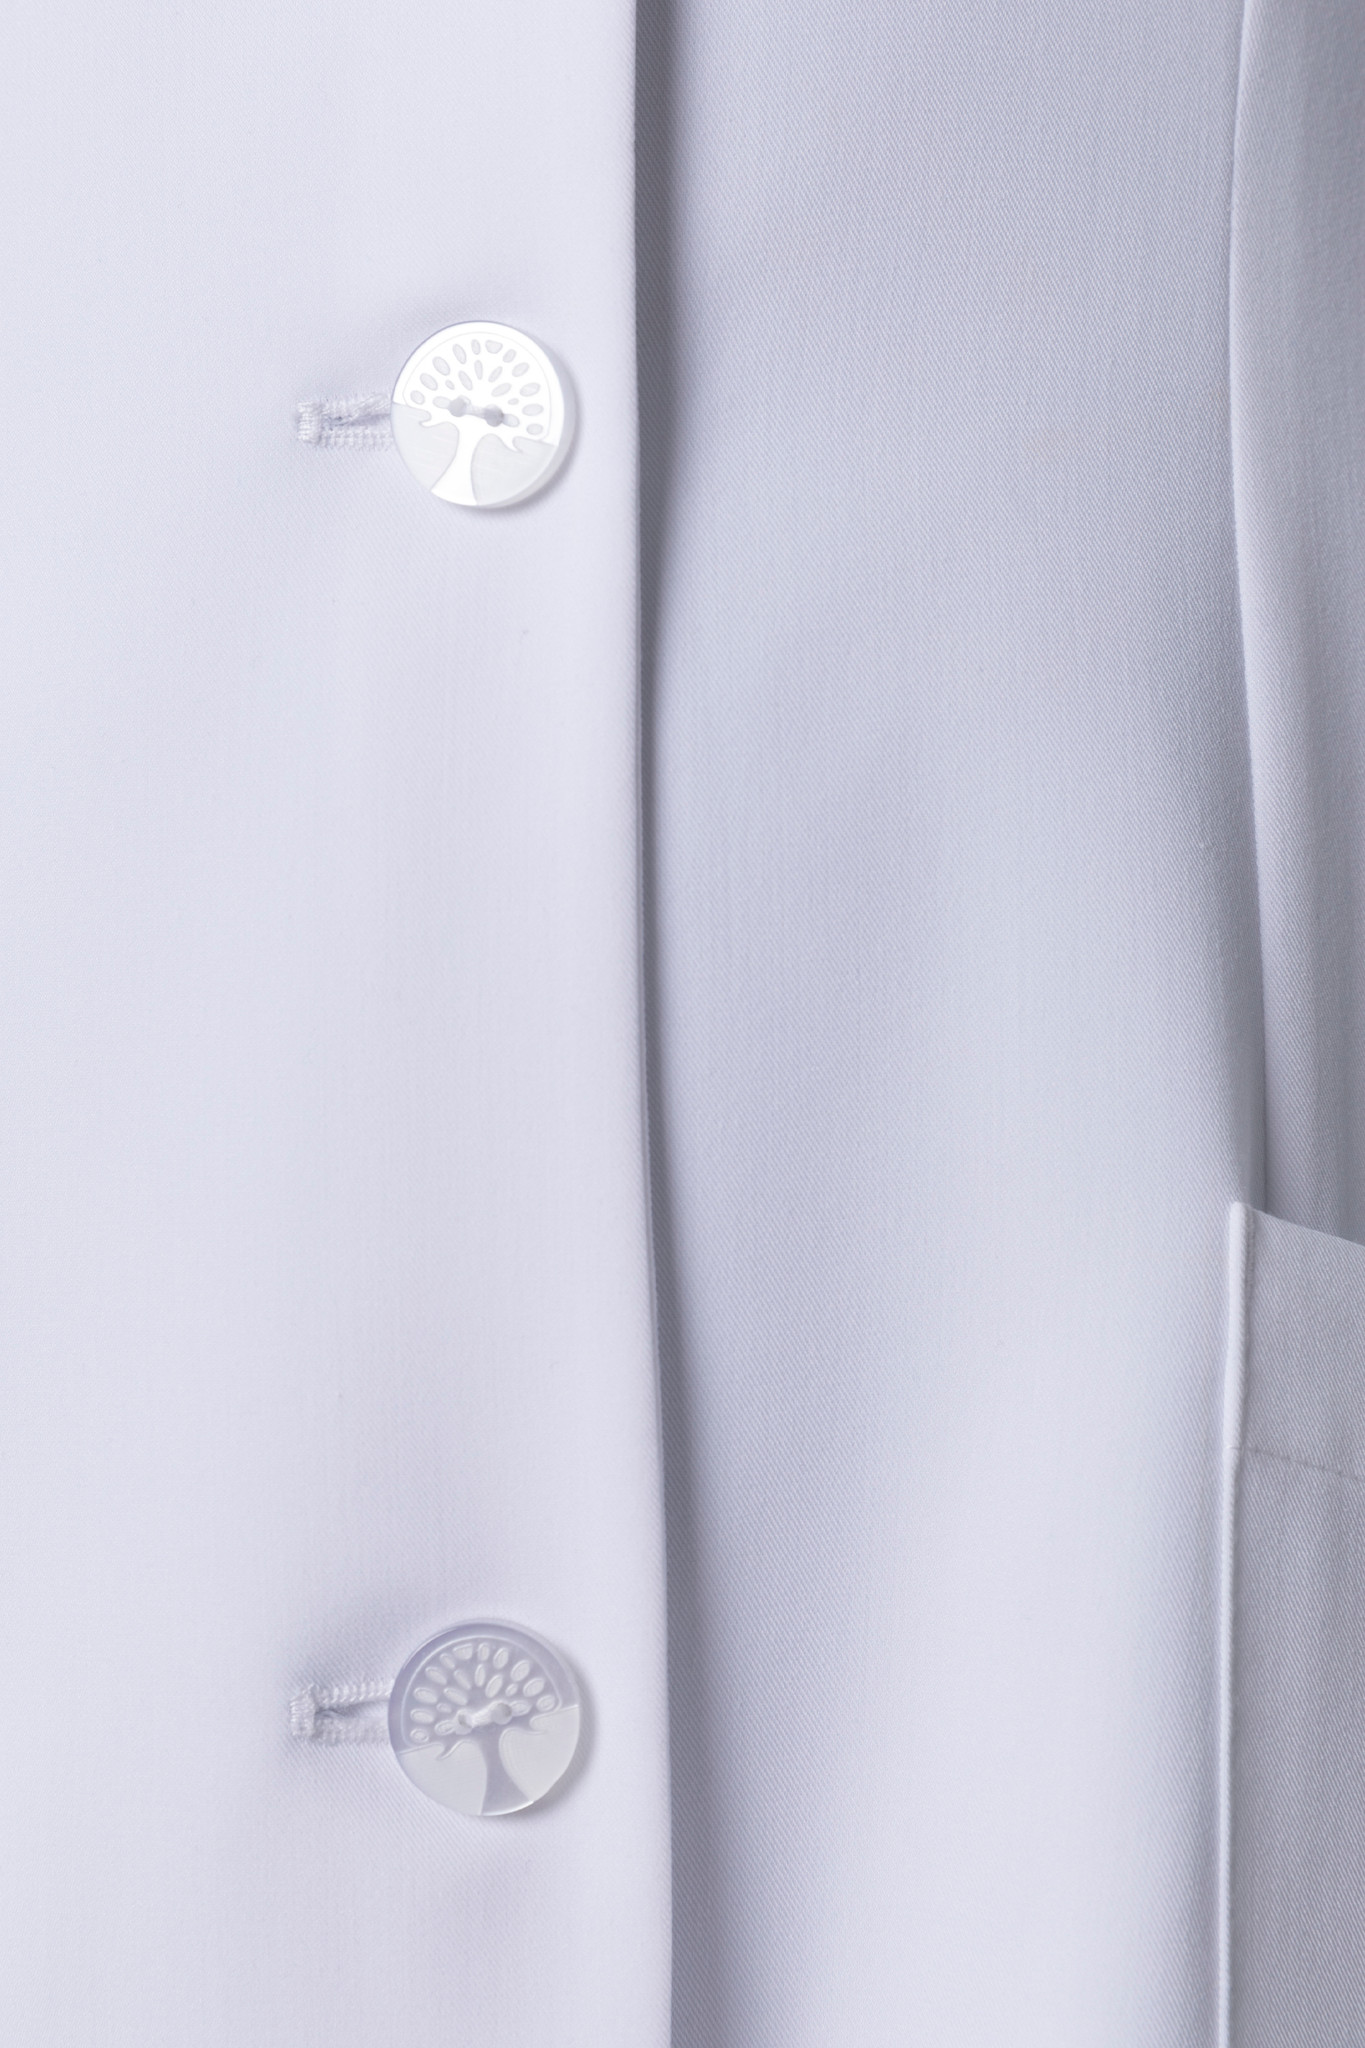 Healing Hands White Coat 5101 The Modernist Fiona Women's Lab Coat Buttons Image